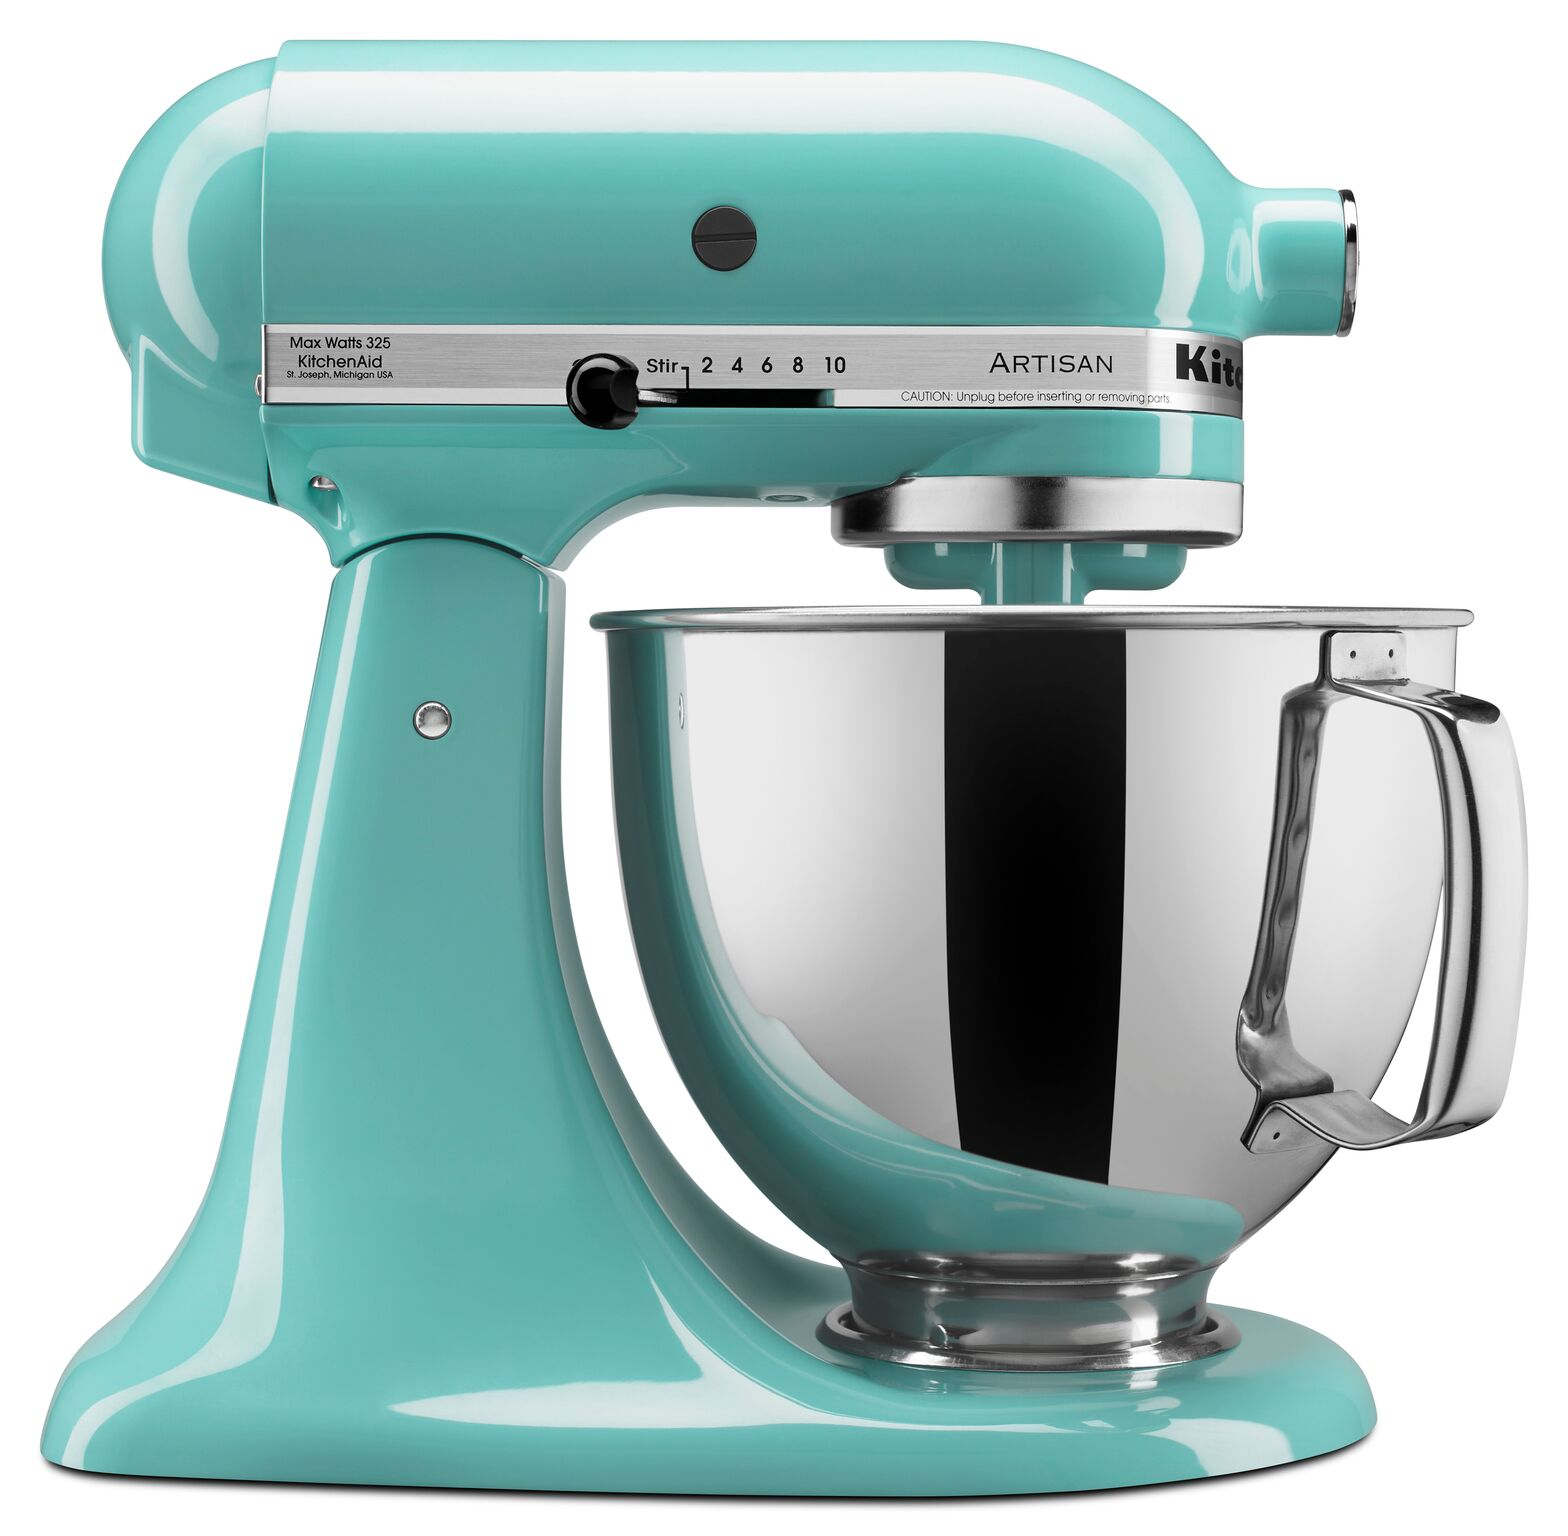 KitchenAid® Artisan® Series 5 Quart Tilt-Head Stand Mixer, Aqua Sky (KSM150PSAQ)